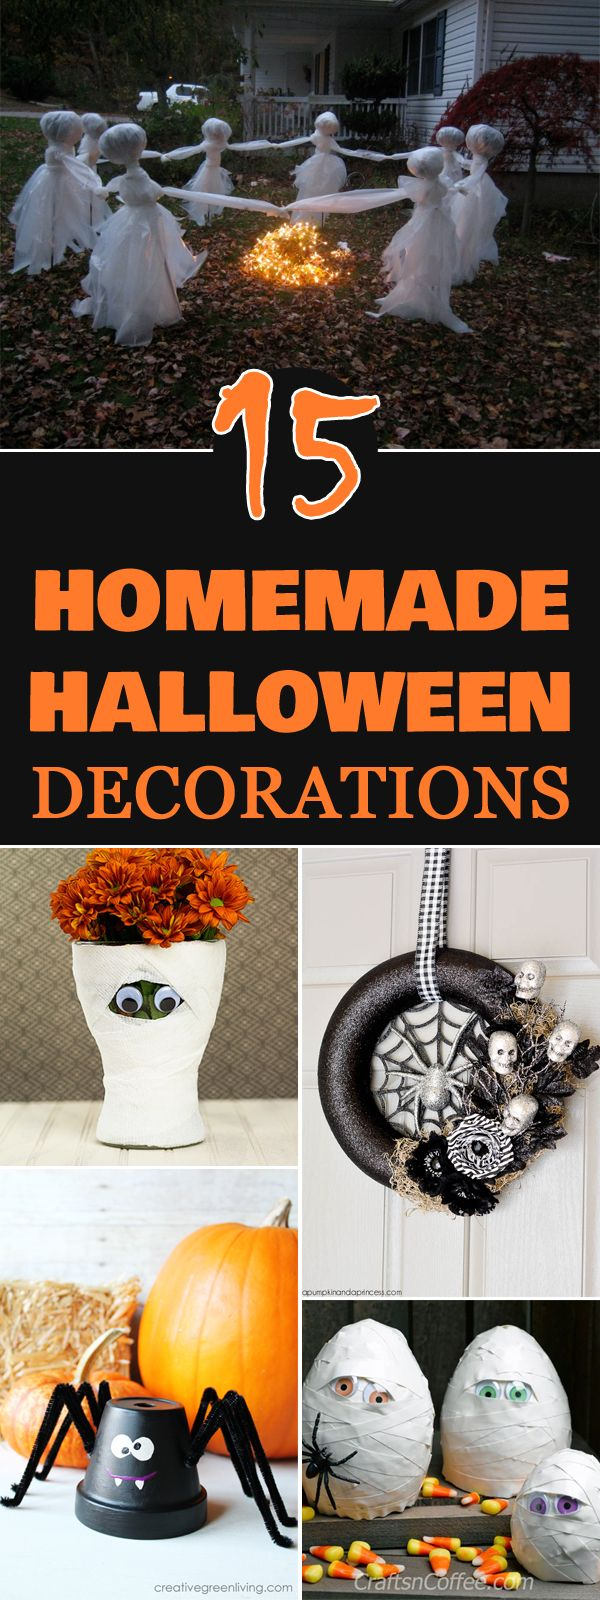 diytotry \u201c 15 Easy Homemade Halloween Decorations → \u201d Art Craft - Homemade Halloween Decorations Pinterest